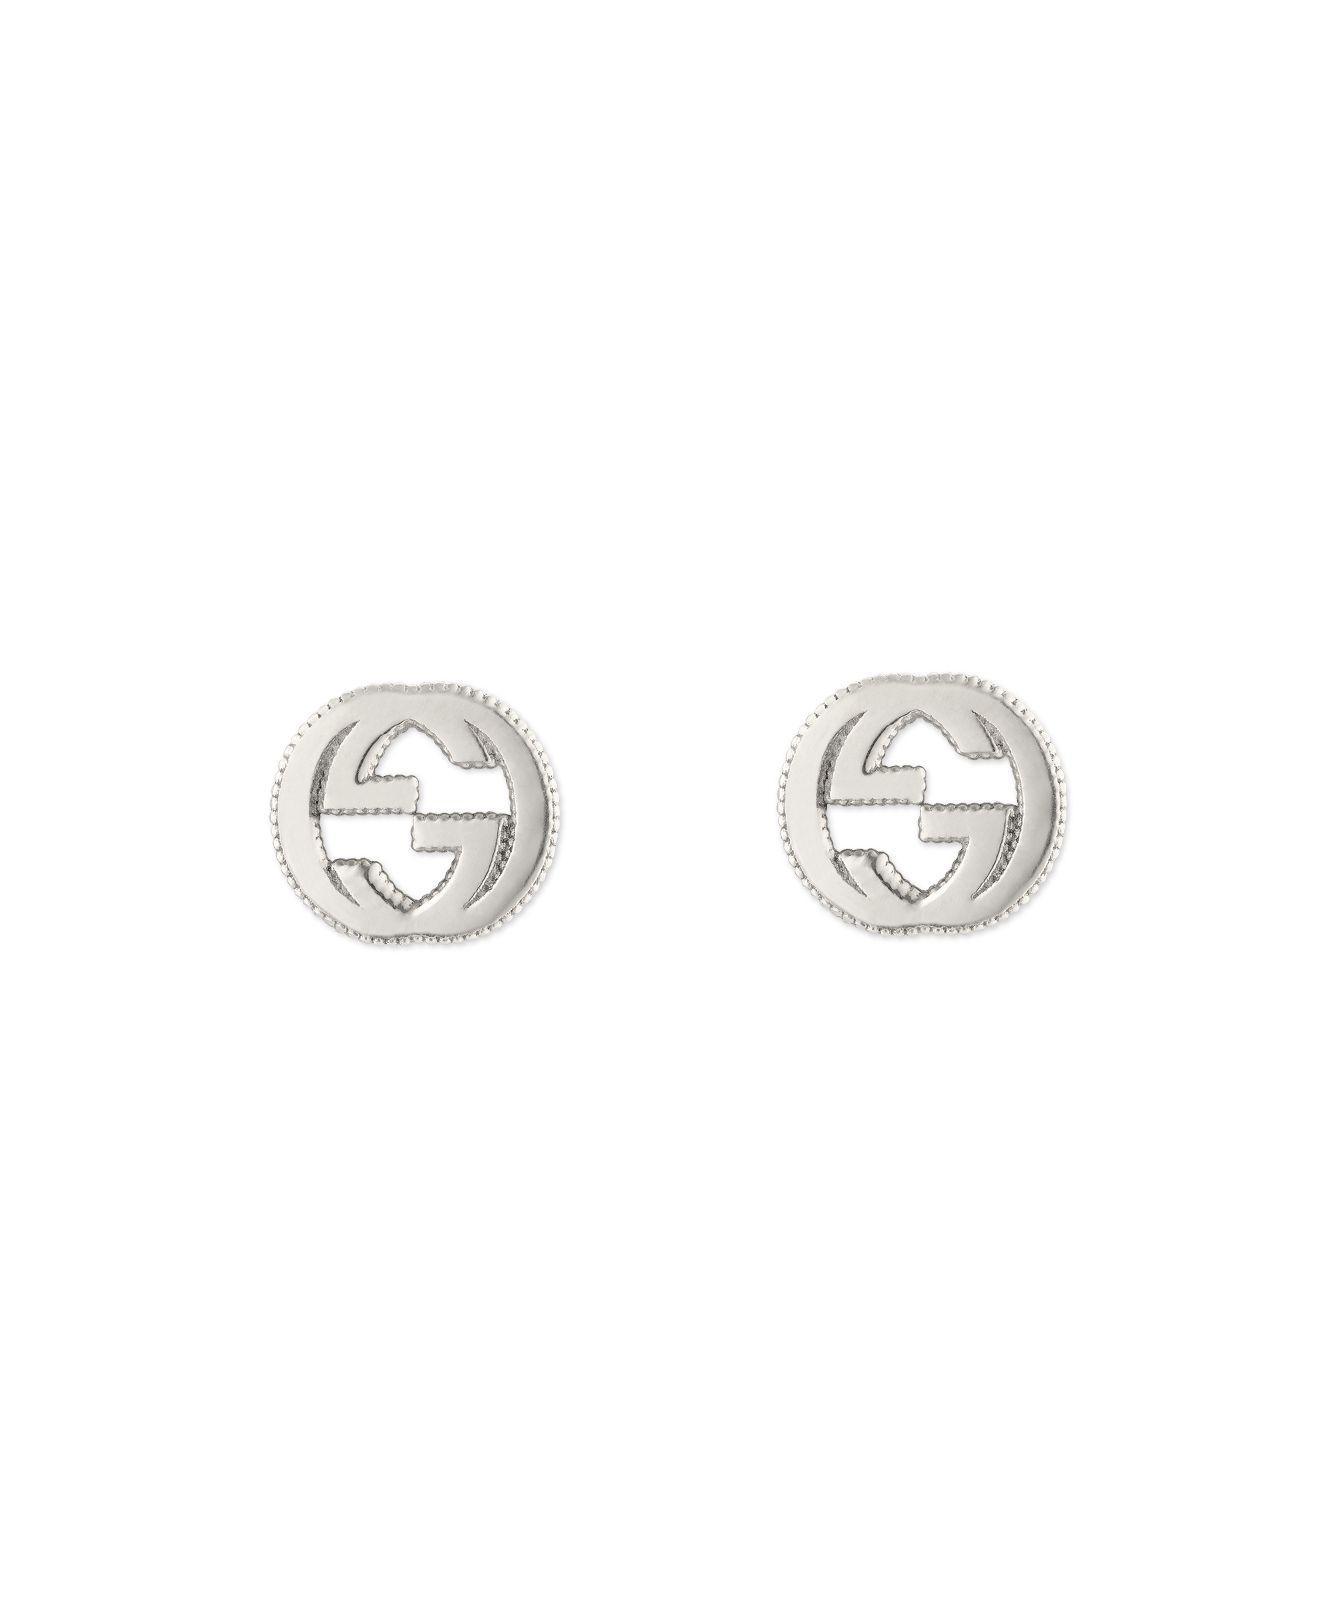 Details about  /Double GG Interlocking Woman Stud Ladies Earrings 925 Sterling Silver